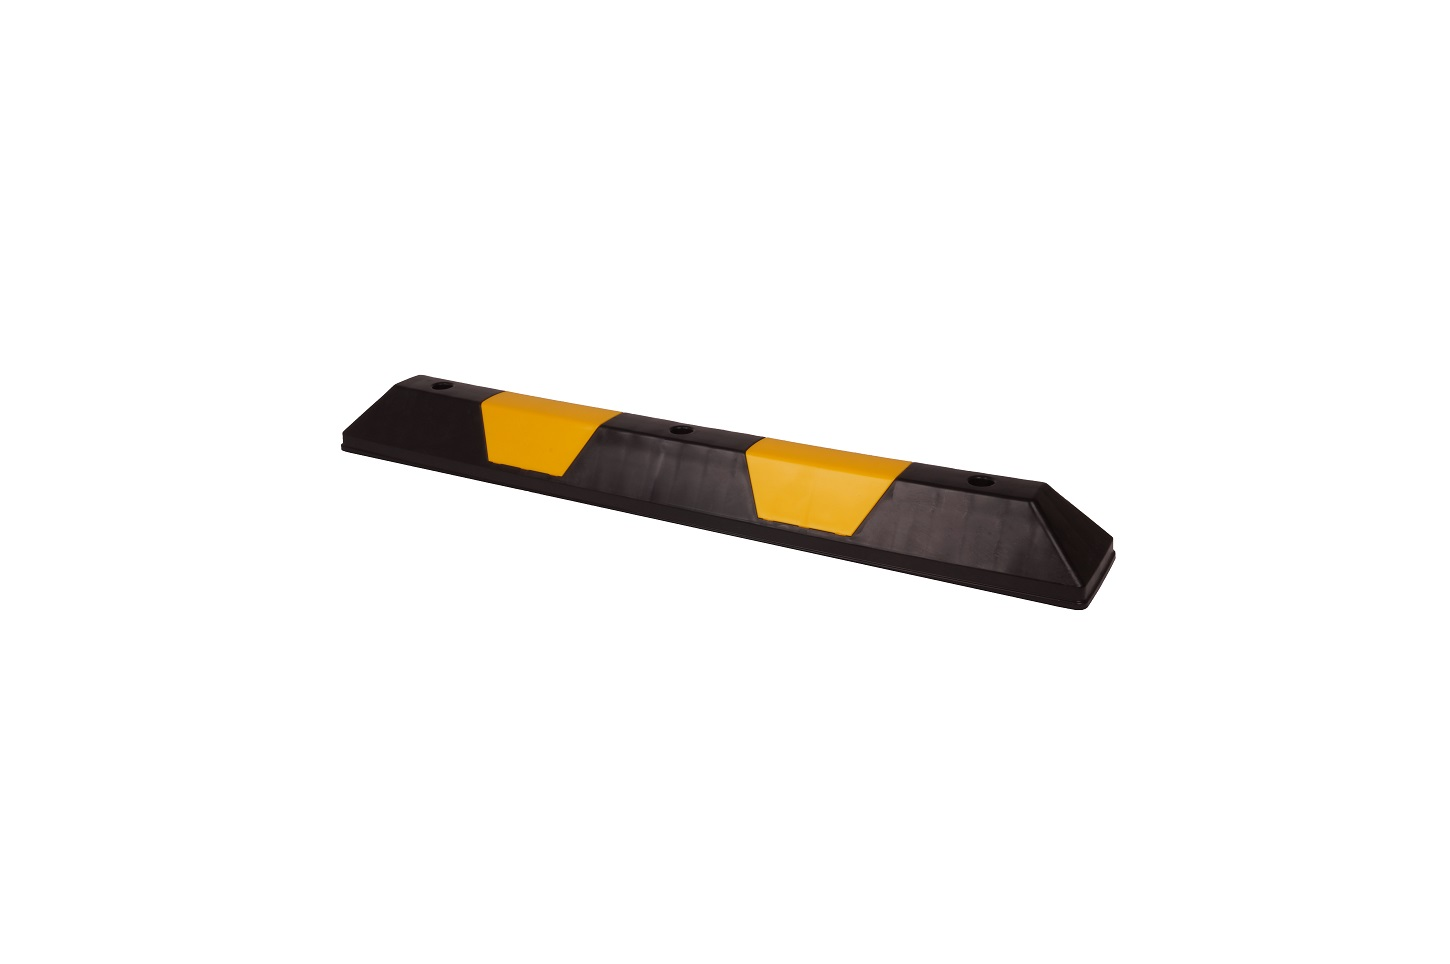 parking aid stop black-yellow 1090 mm